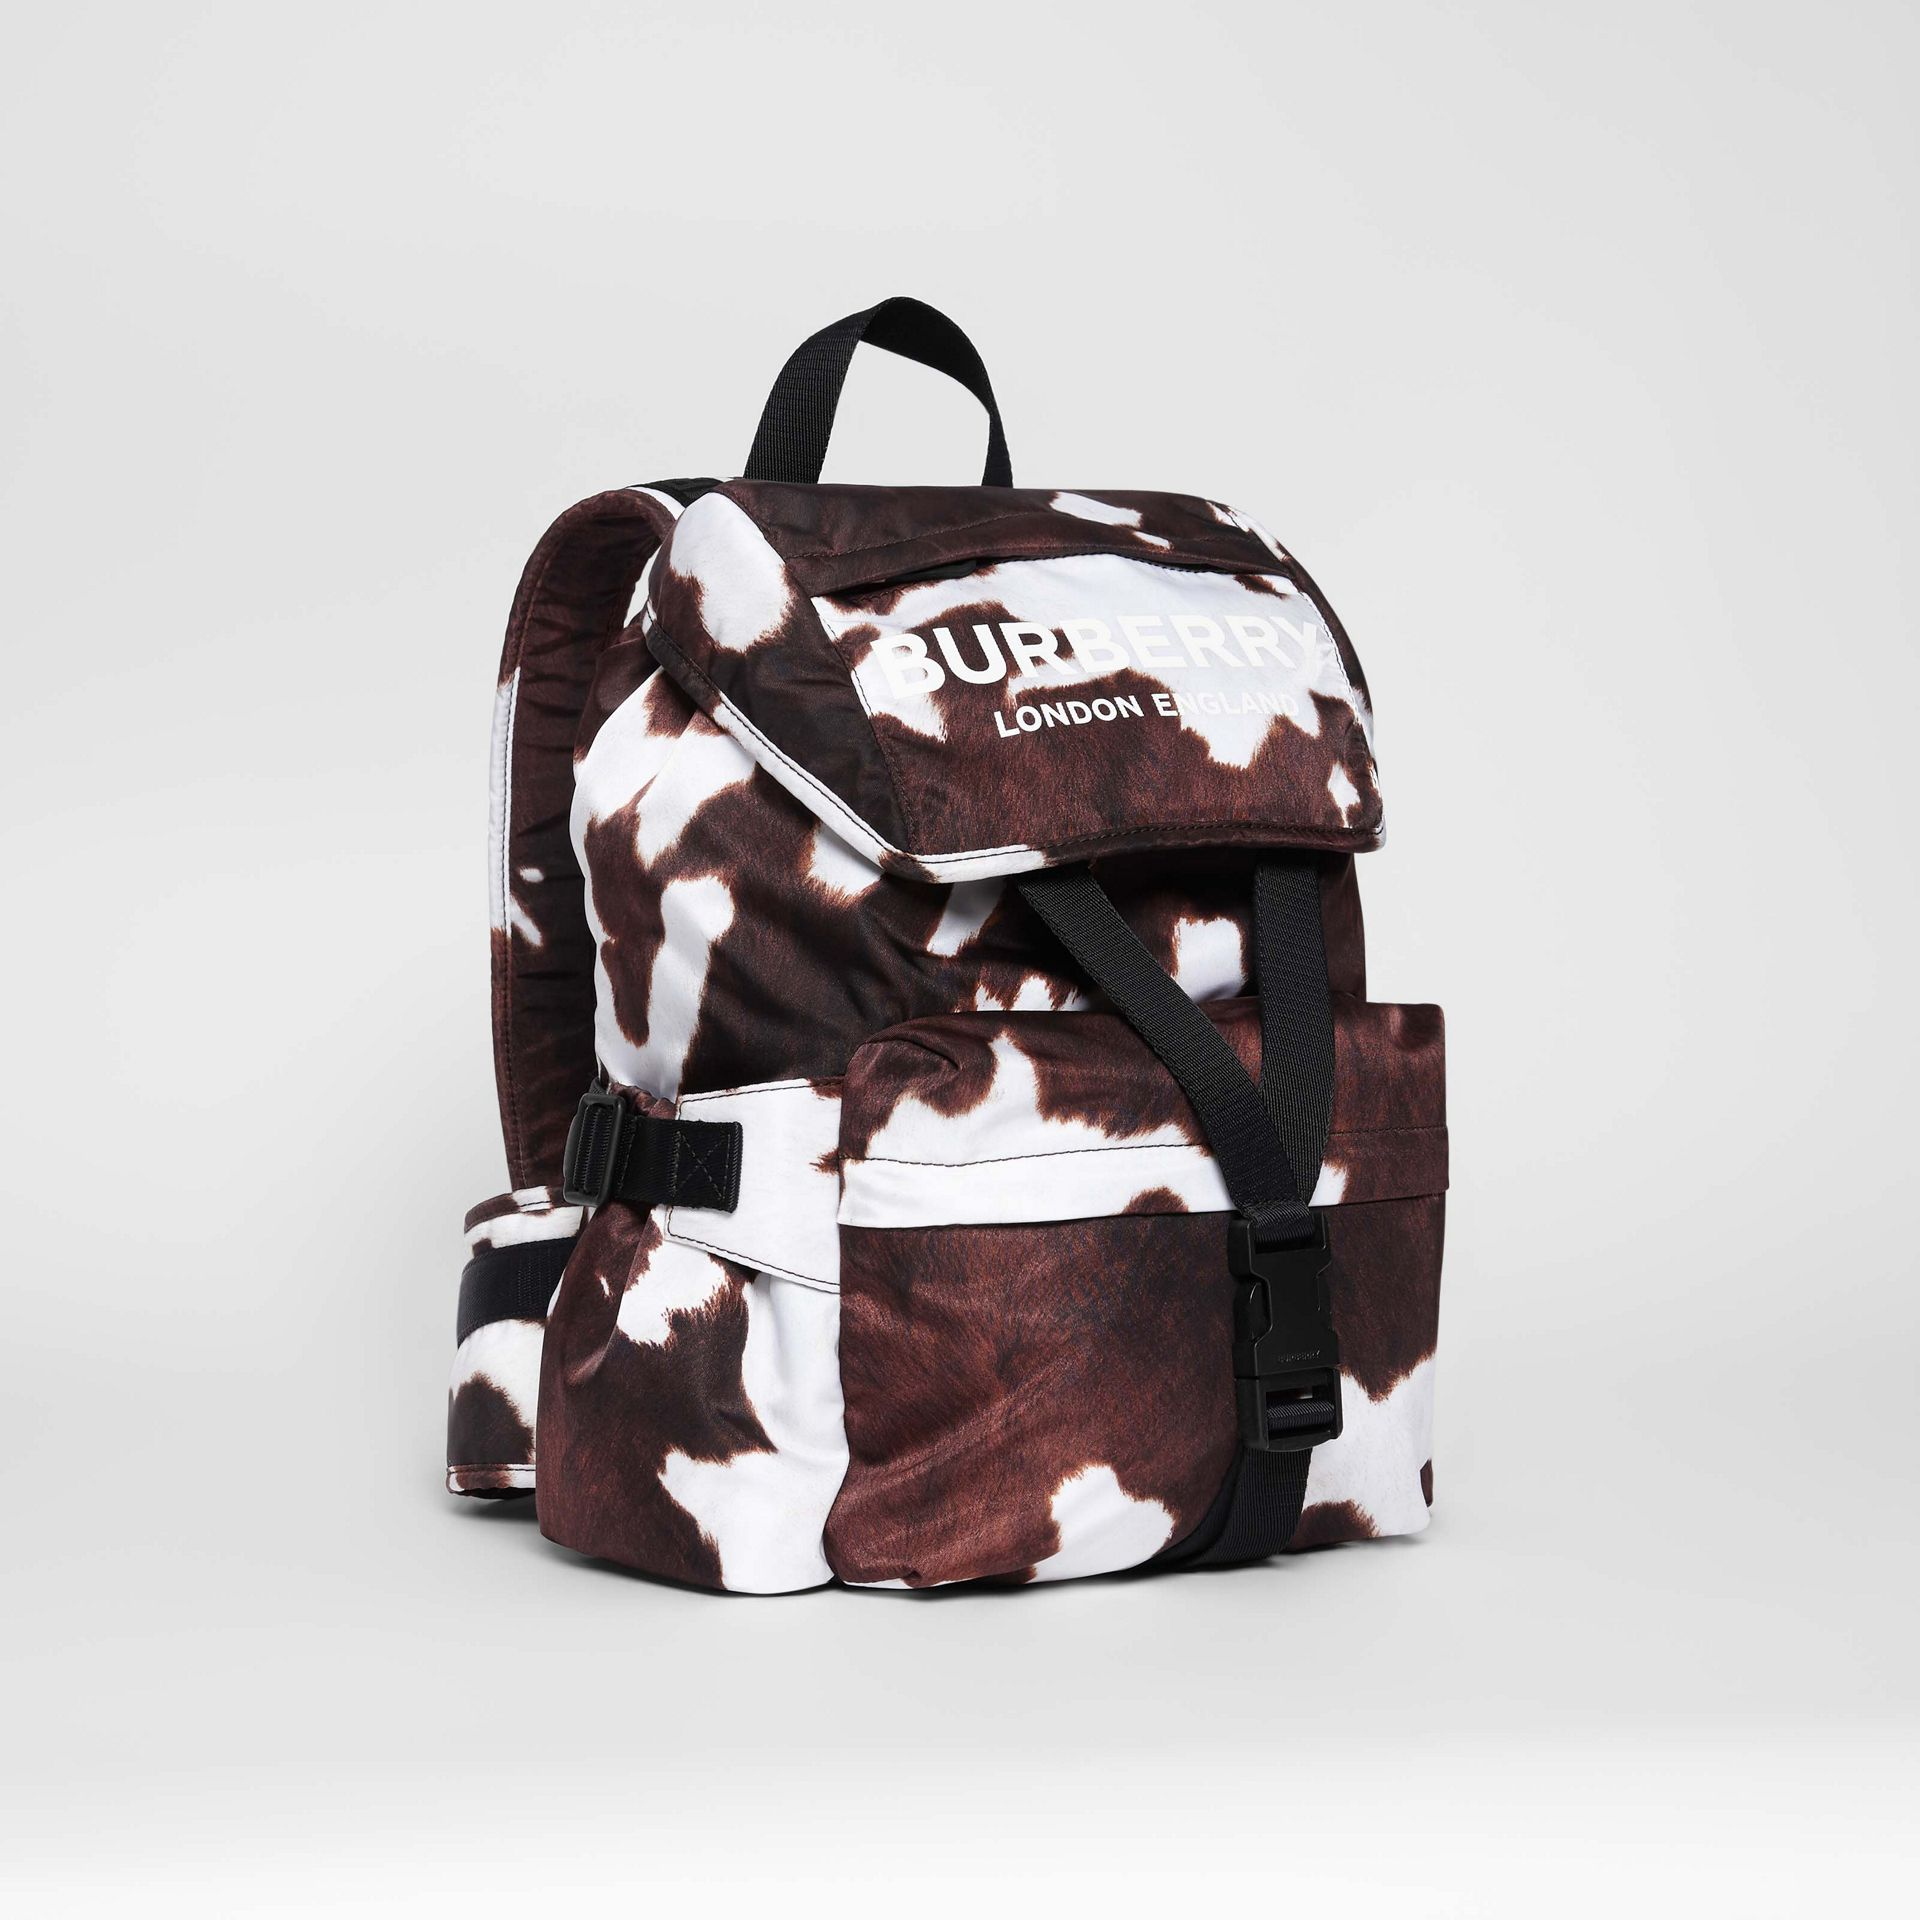 Cow Print Nylon Backpack in Mahogany - Women | Burberry United Kingdom - gallery image 6